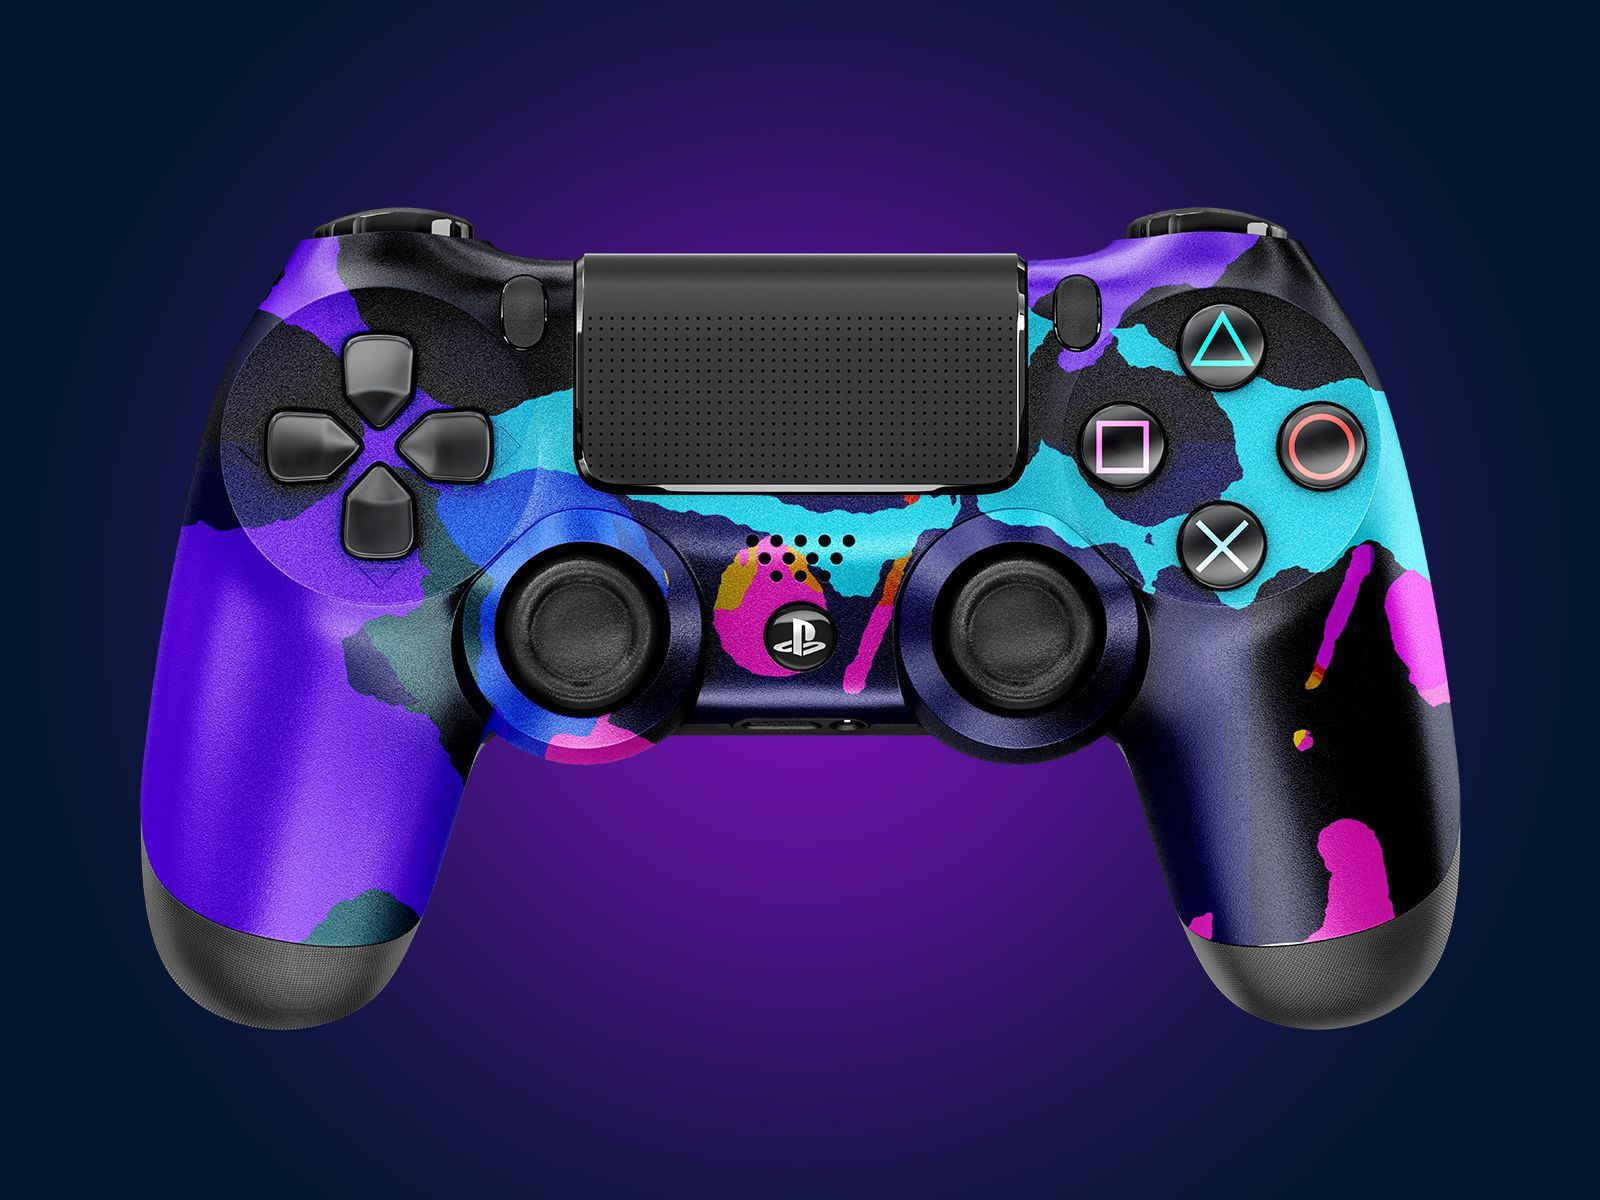 Mix It Up Ps4 controller, Snowboard design, Ps4